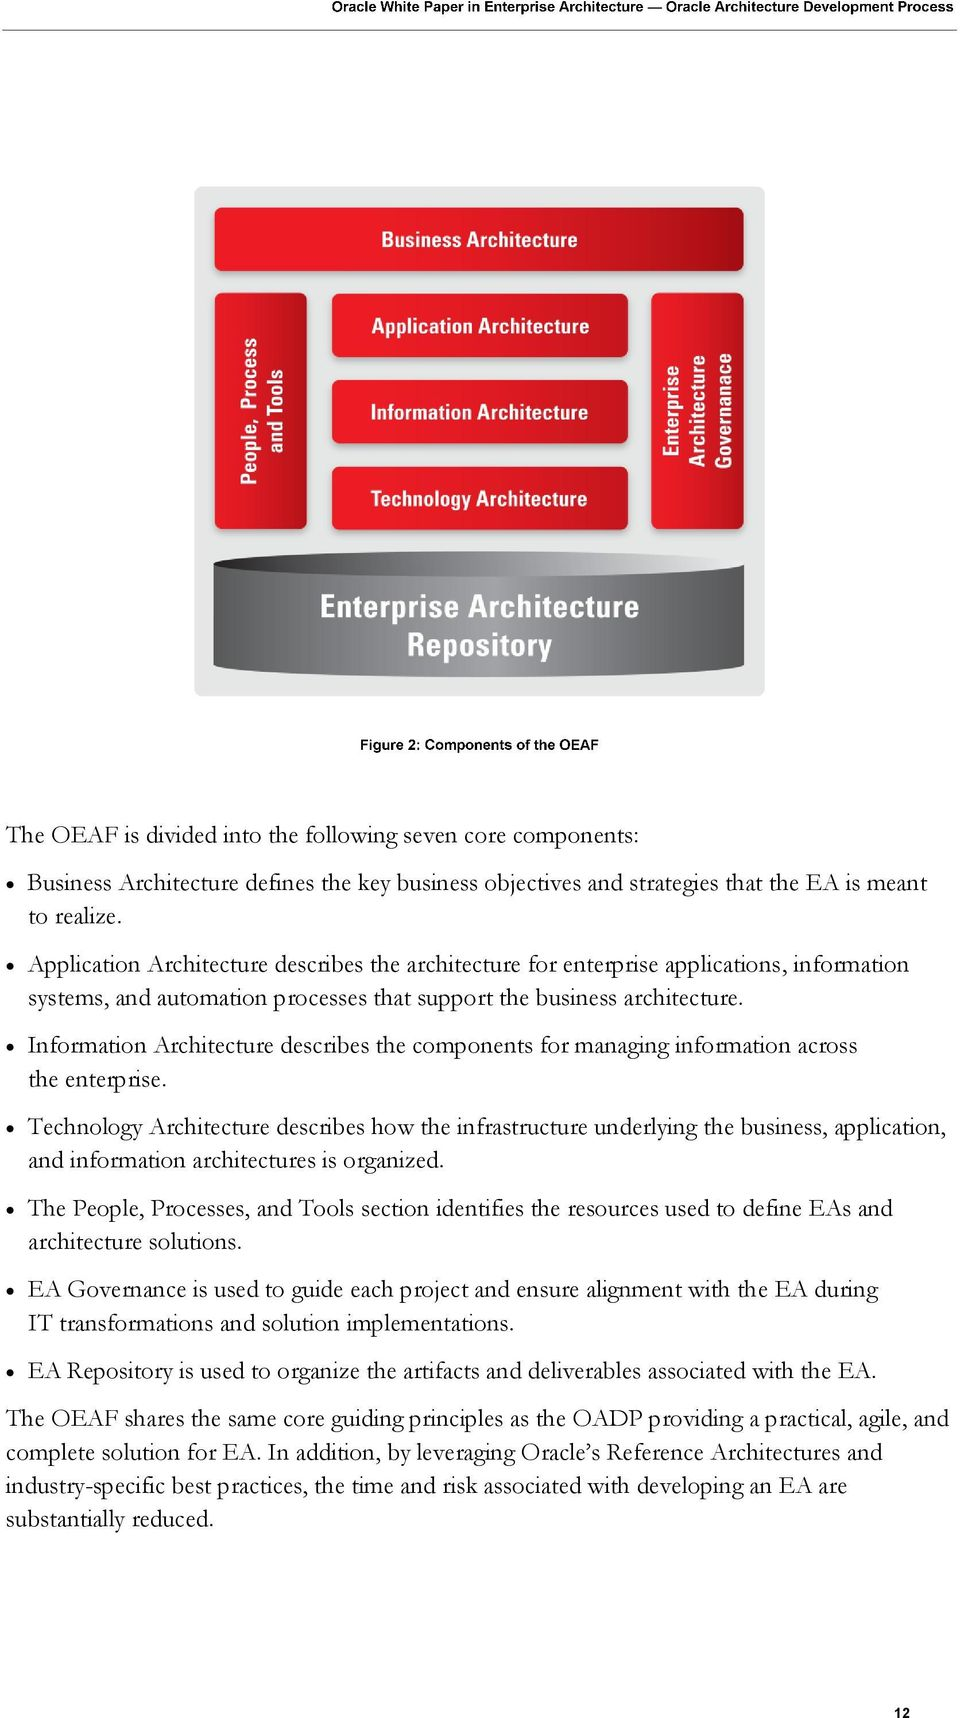 Information Architecture describes the components for managing information across the enterprise.